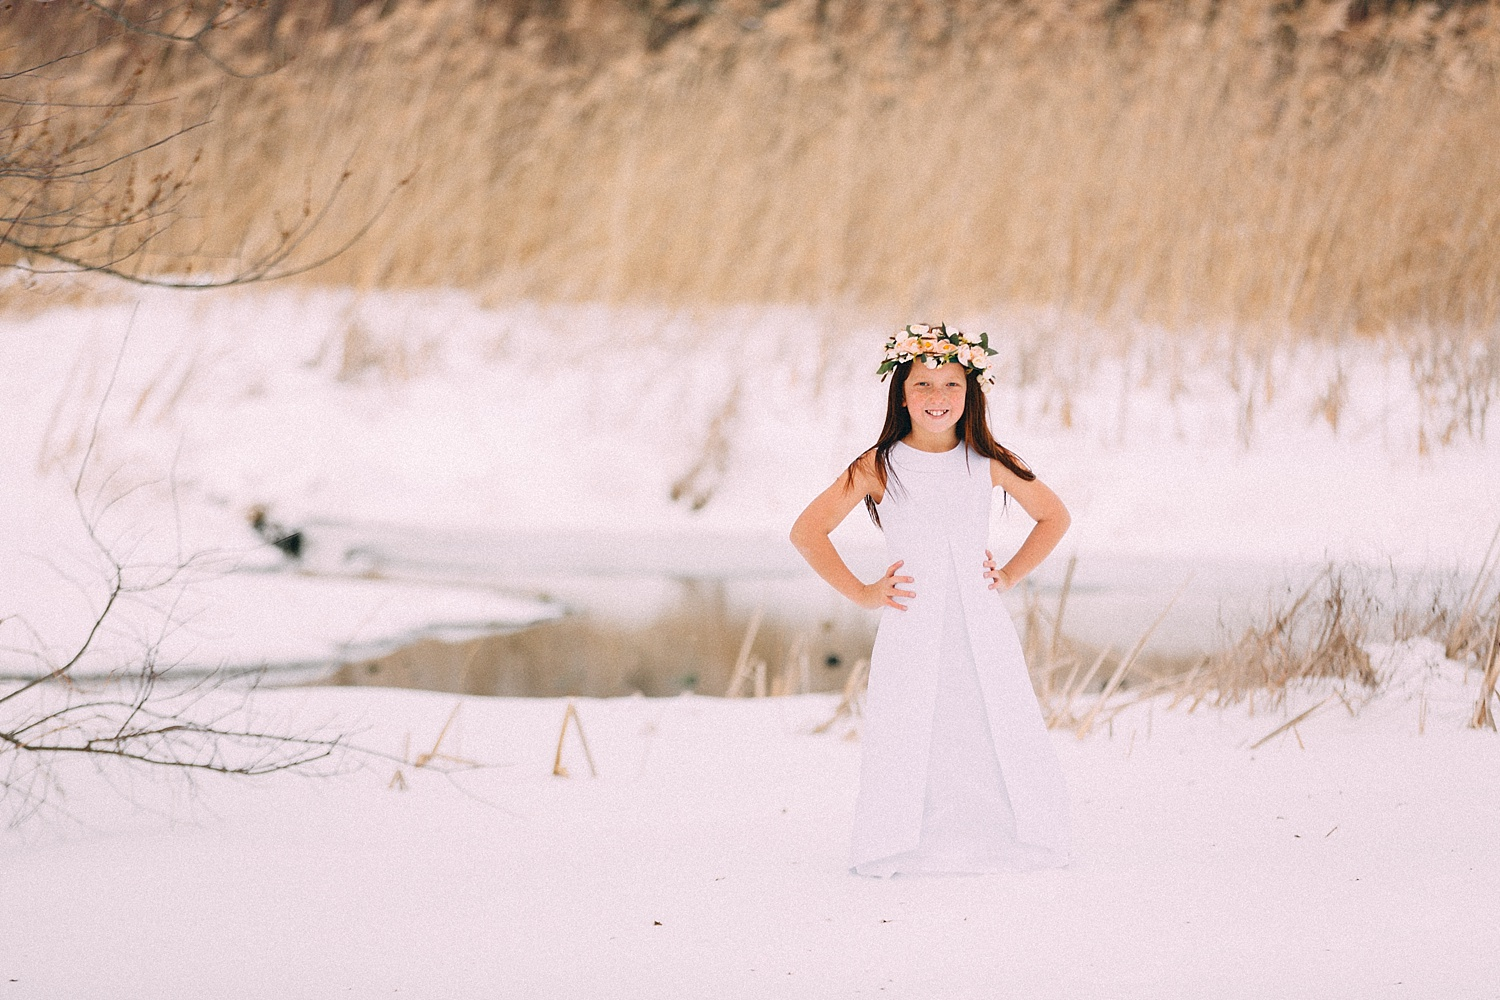 Berks County snowy child photoshoot